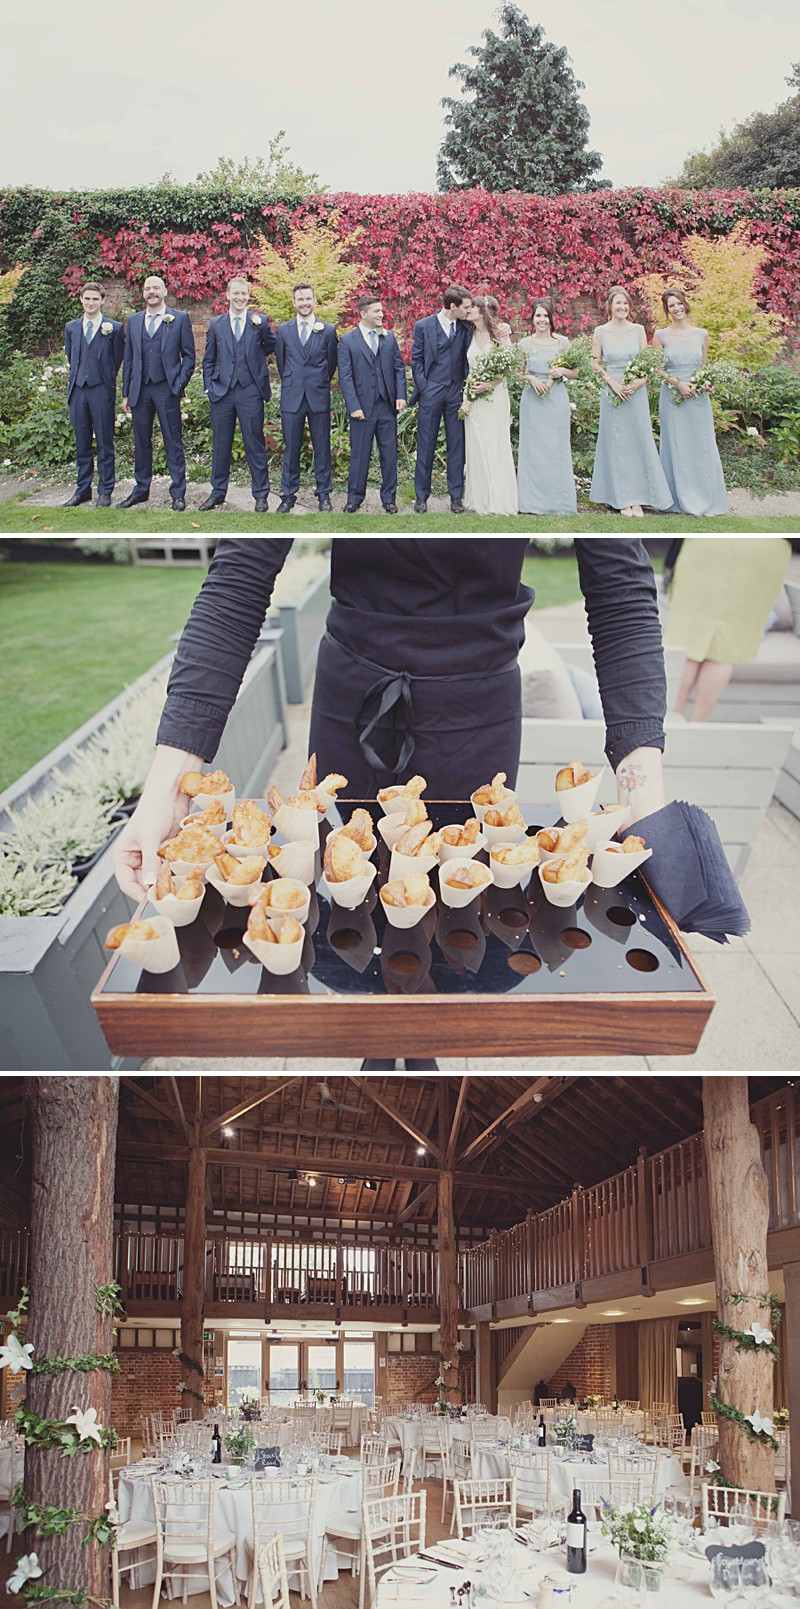 A Rustic Wedding At Gaynes Park With A Jenny Packham 'Eden' Dress And Dusky Blue Bridesmaids Dresses With Foliage Bouquets By Philippa James Photography._0004